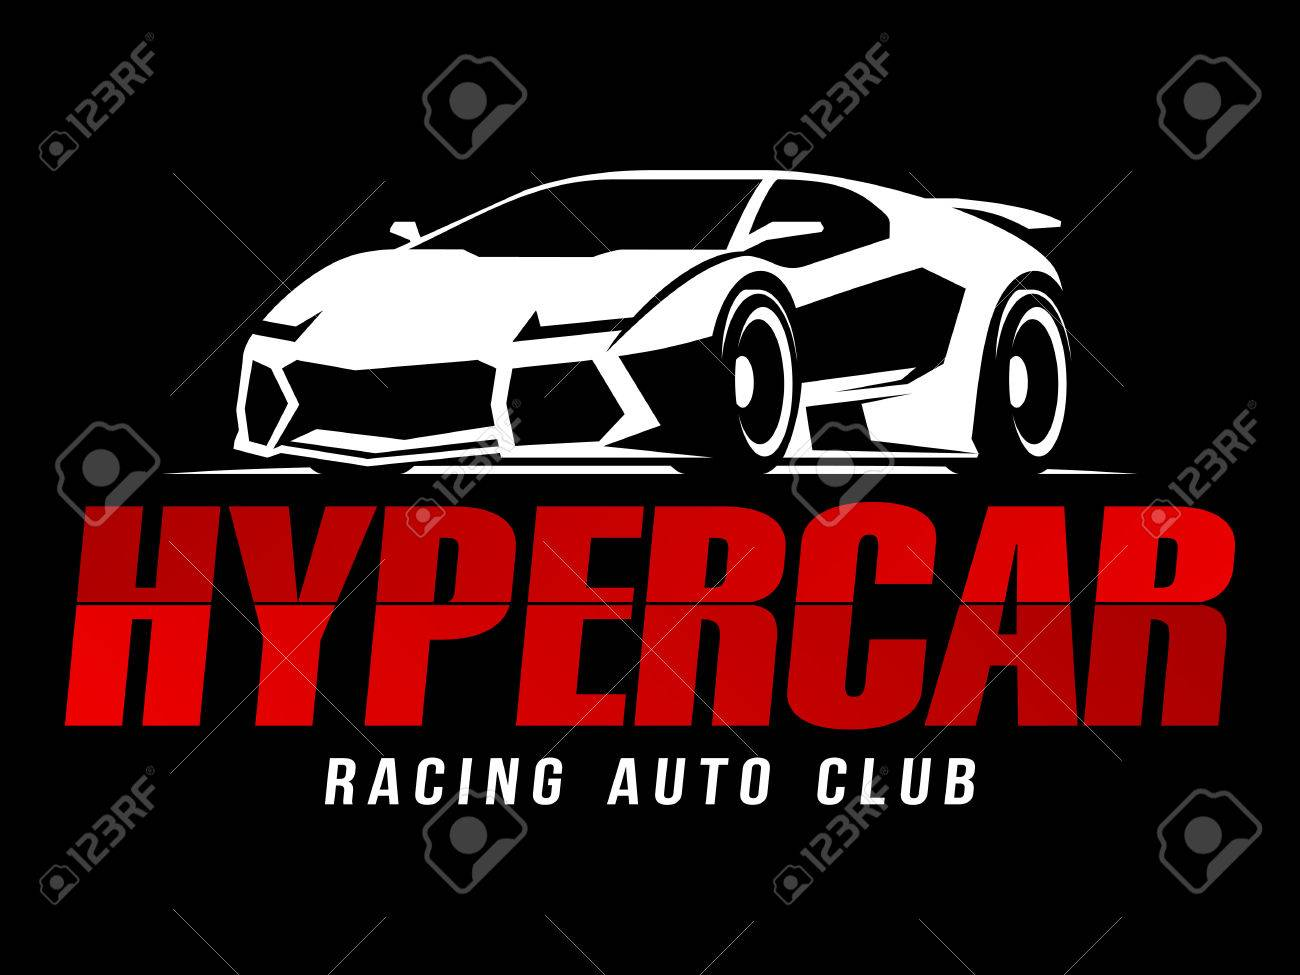 Racing Auto Club Hypercar Logo Royalty Free Klipartlar Vektor